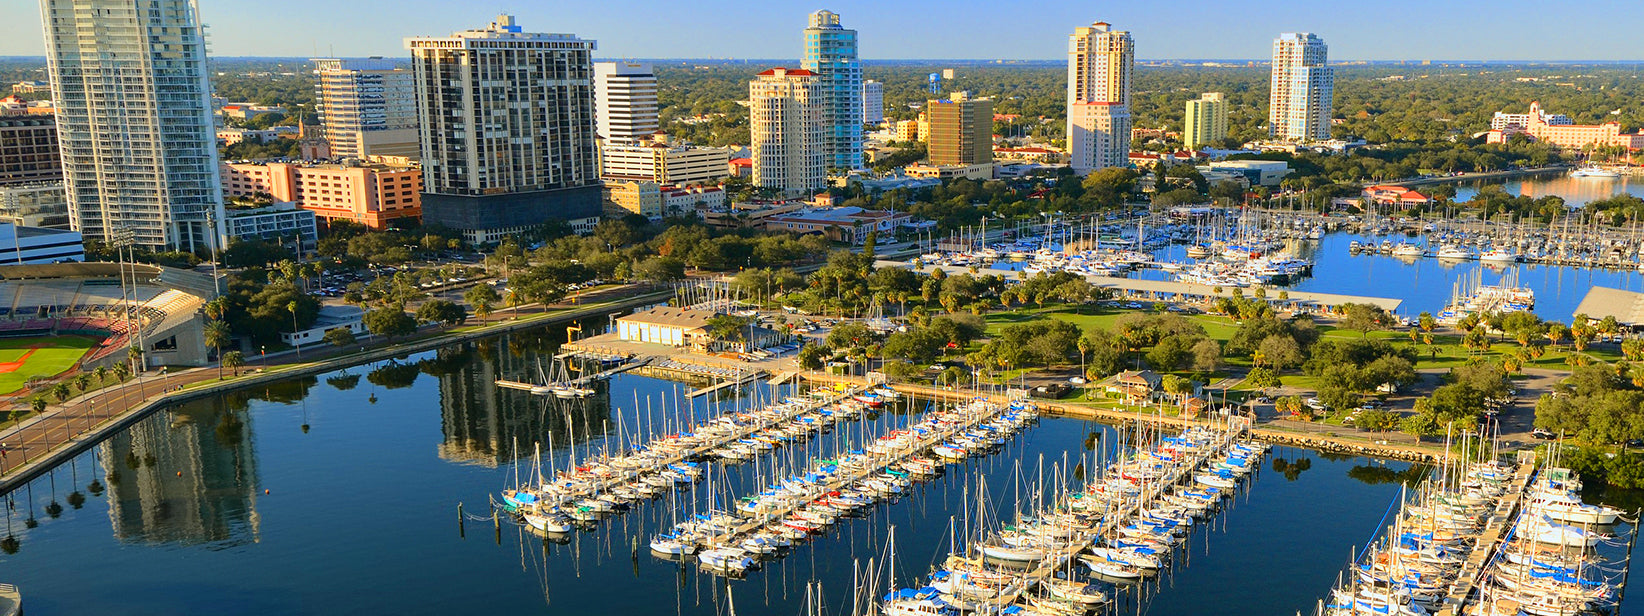 The Ultimate & Honest Guide To The Best Neighborhoods In St. Petersburg, FL